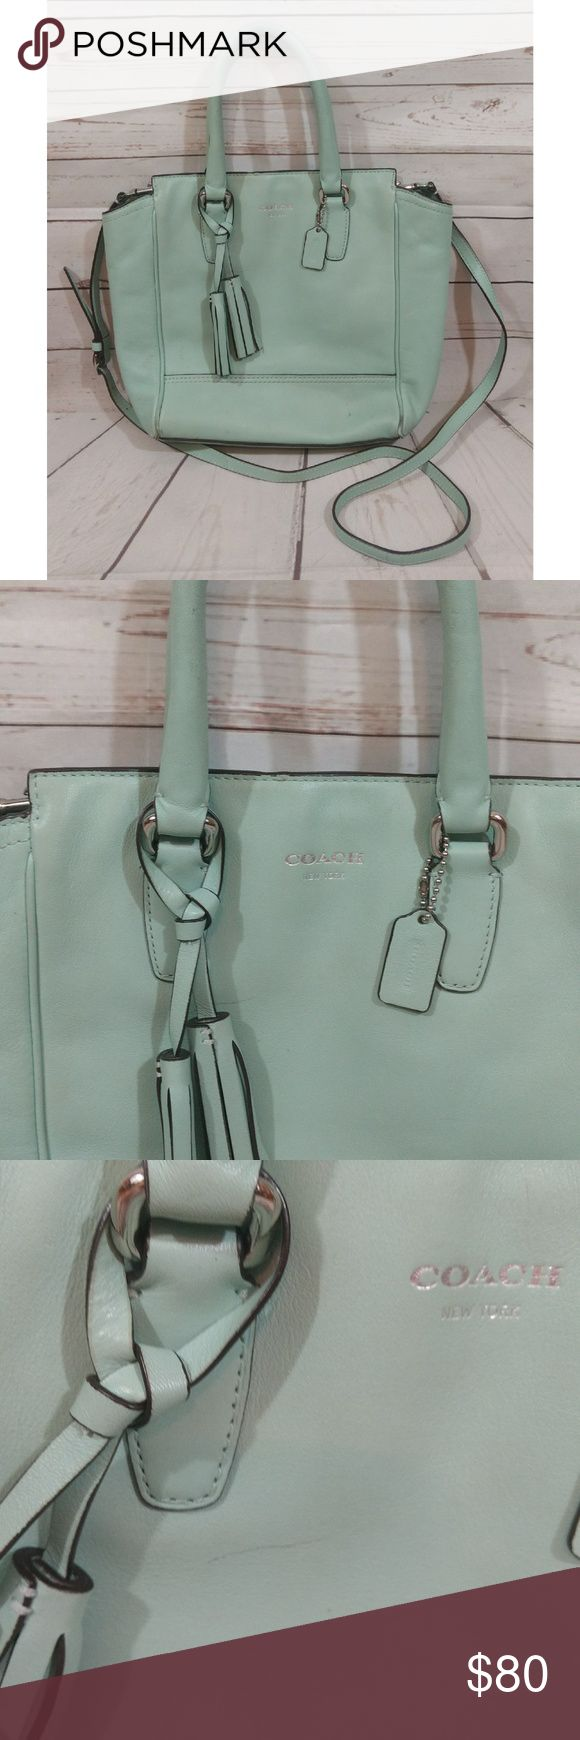 Coach Legacy Leather Mini Tanner Crossbody Bag Coach Legacy Leather Mini Tanner Shoulder Hand Bag Crossbody 48894 Mint Green   Has been worn/used a shown! Please review all photos.   *COACH MINI LEGACY TANNER  *MINT GREEN  *SILVER HARDWARE  *HANGTAG  *DUAL HANDLES  *CROSSBODY STRAP  *LEATHER TASSELS  *ZIP CLOSURE Coach Bags Crossbody Bags